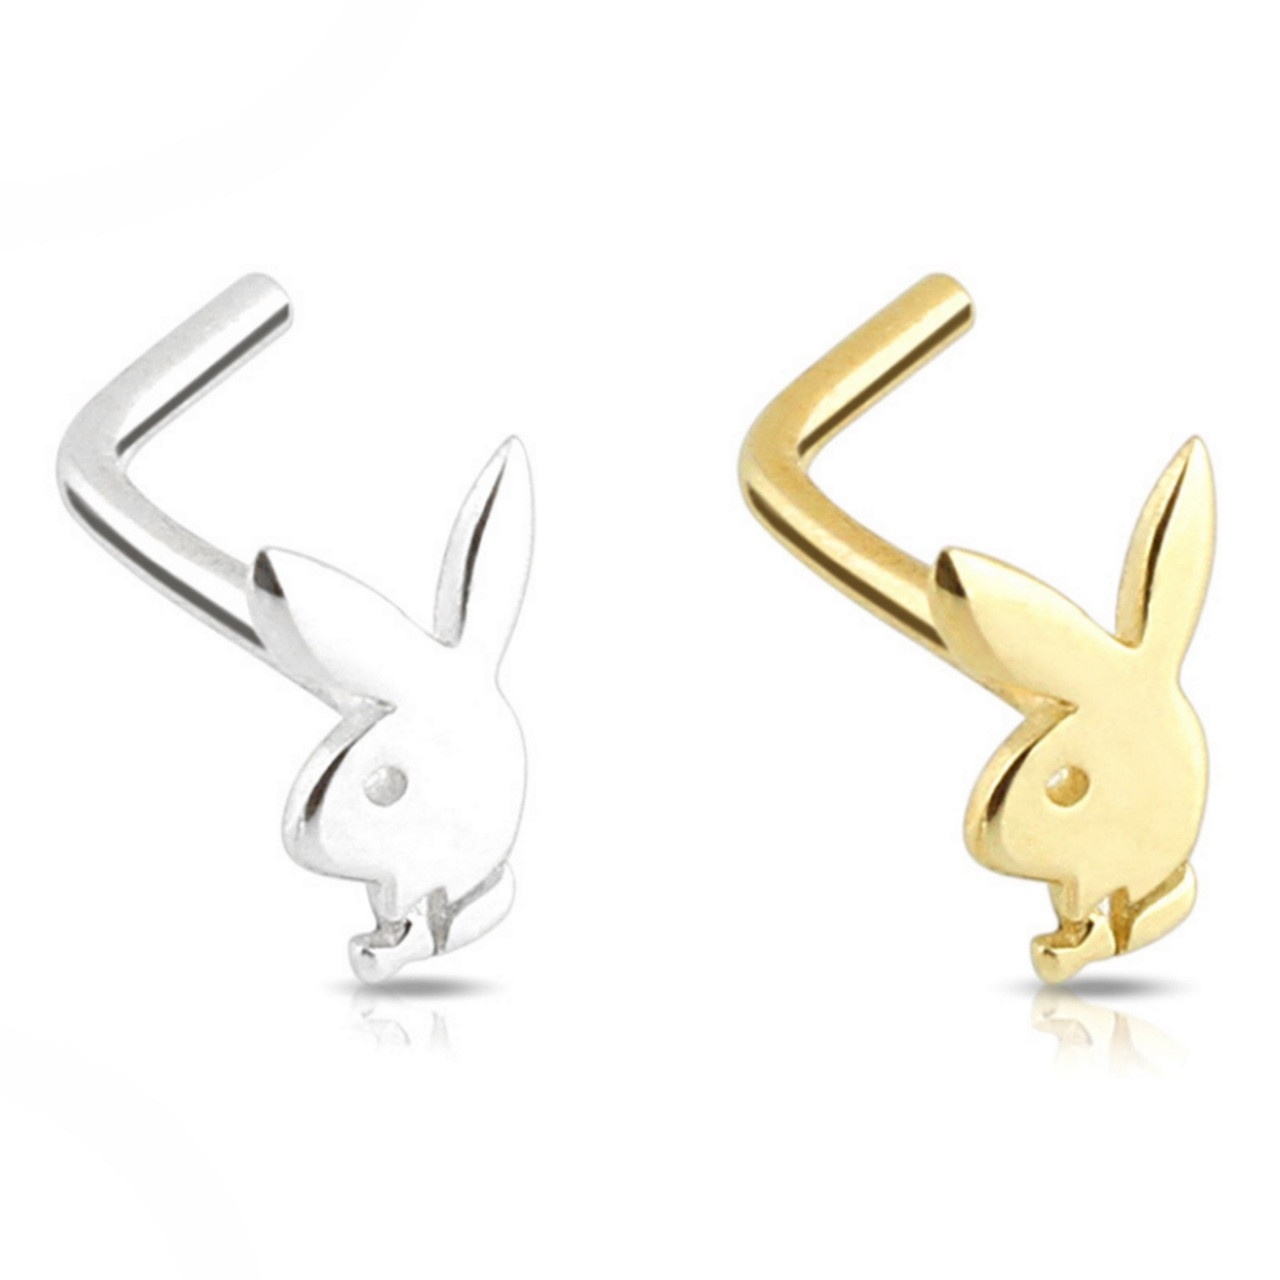 14kt Gold Playboy Bunny L Shaped Nose Ring 20g 1 4 Bodydazz Com